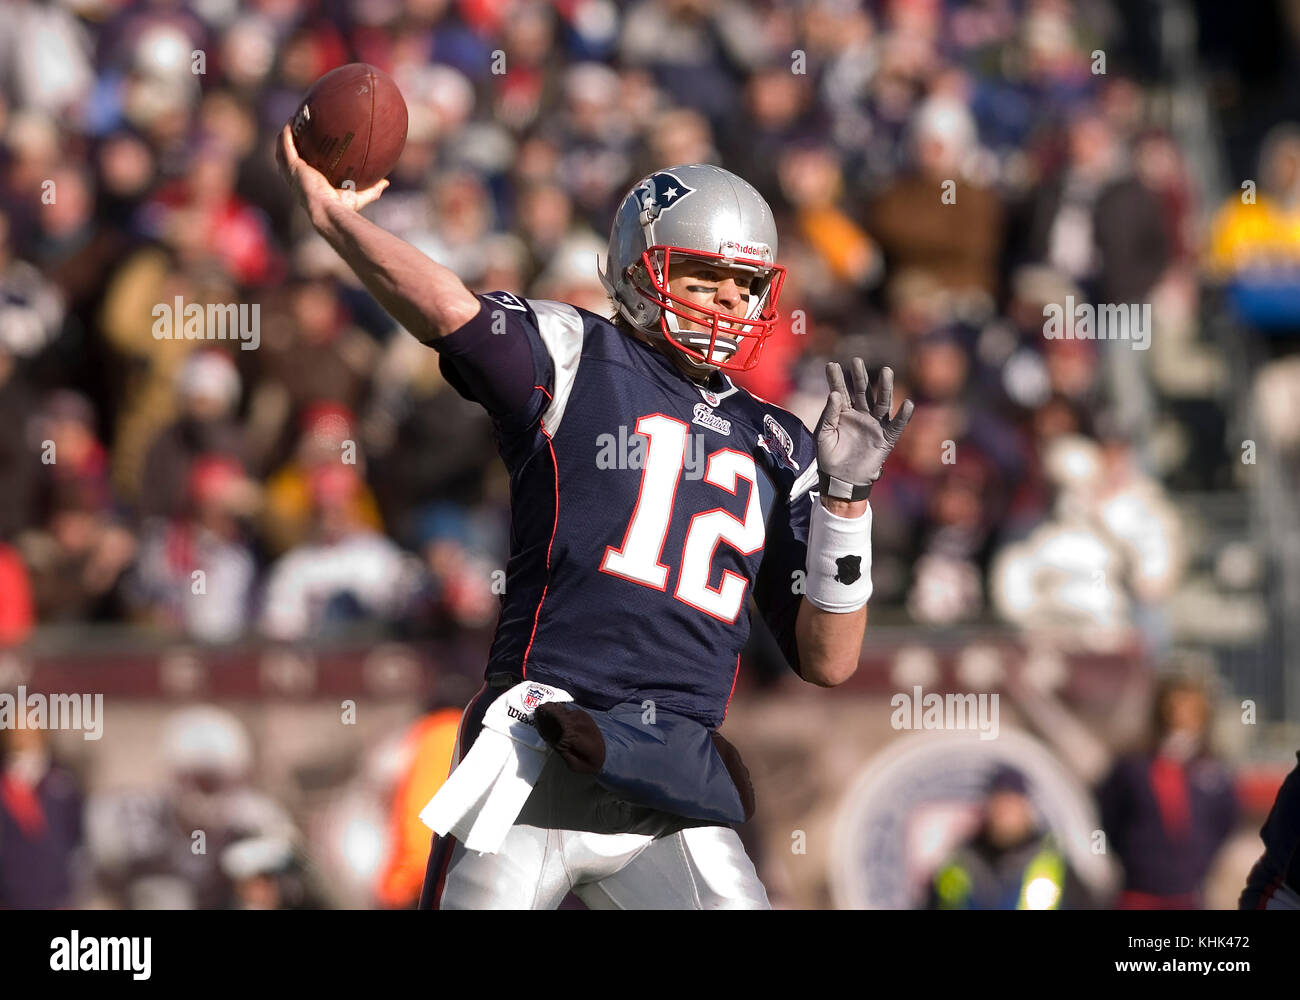 New England Patriot Quarterback Tom Brady (12) with a first quarter pass in a game at Gillette Stadium, Foxboro, - Stock Image